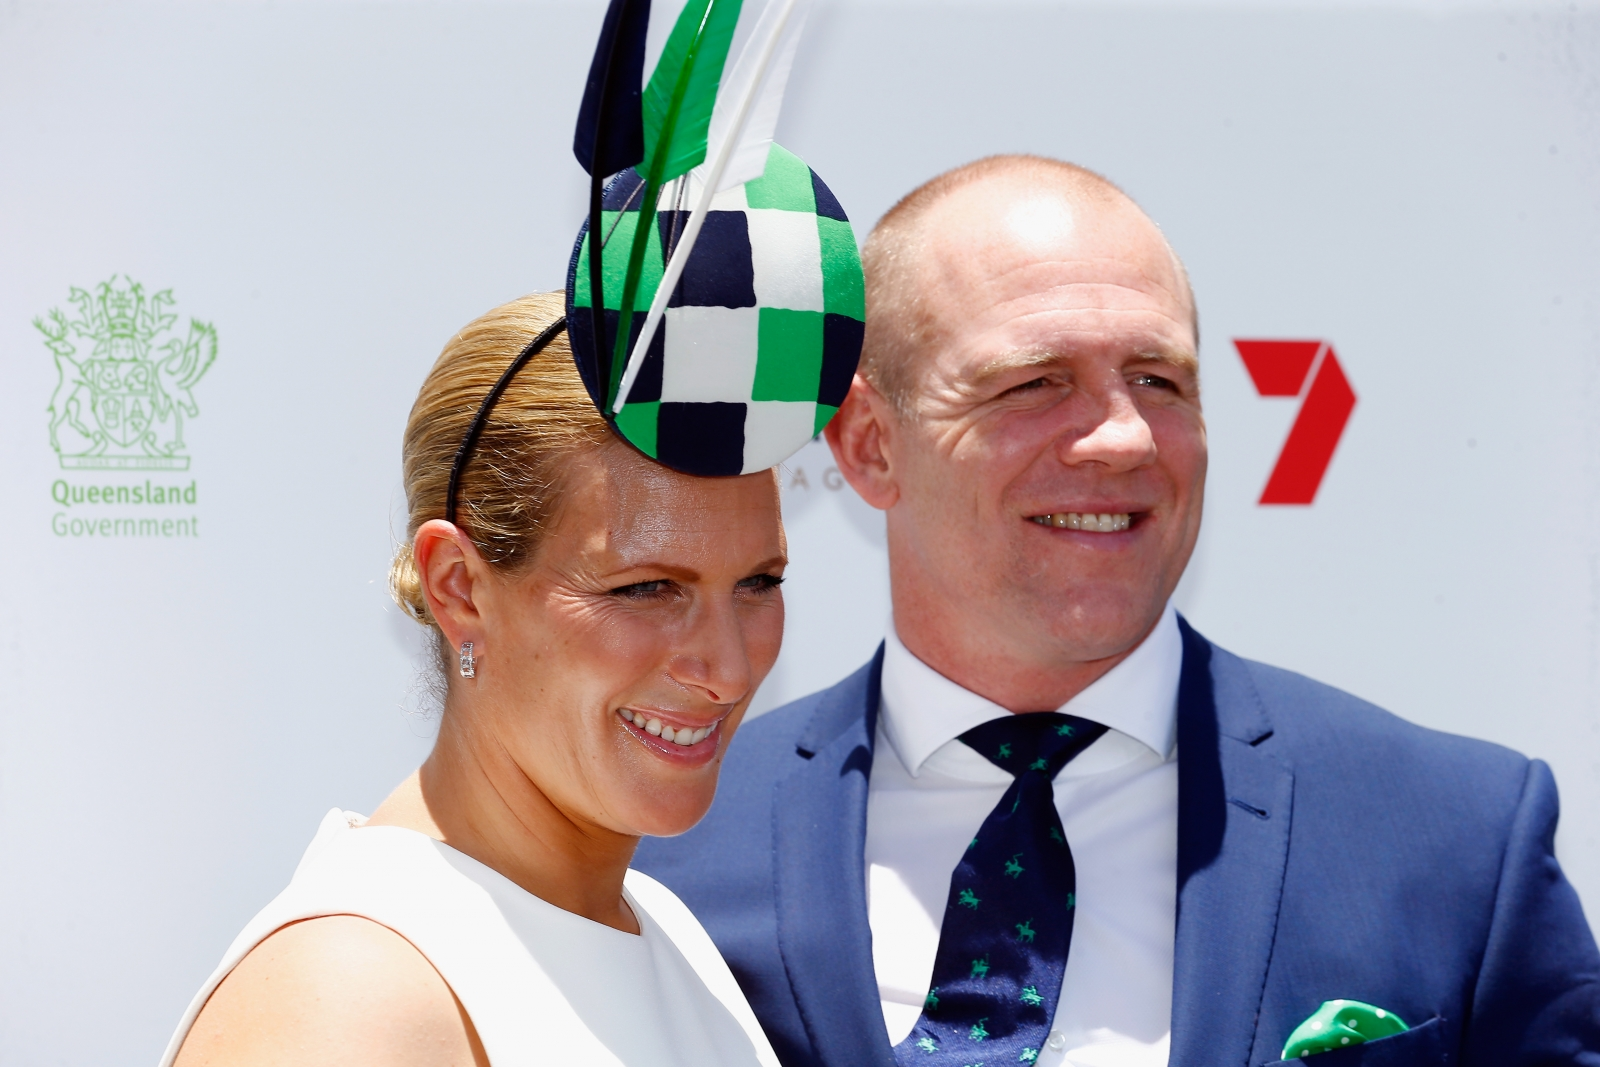 Second baby on the way for Zara Tindall